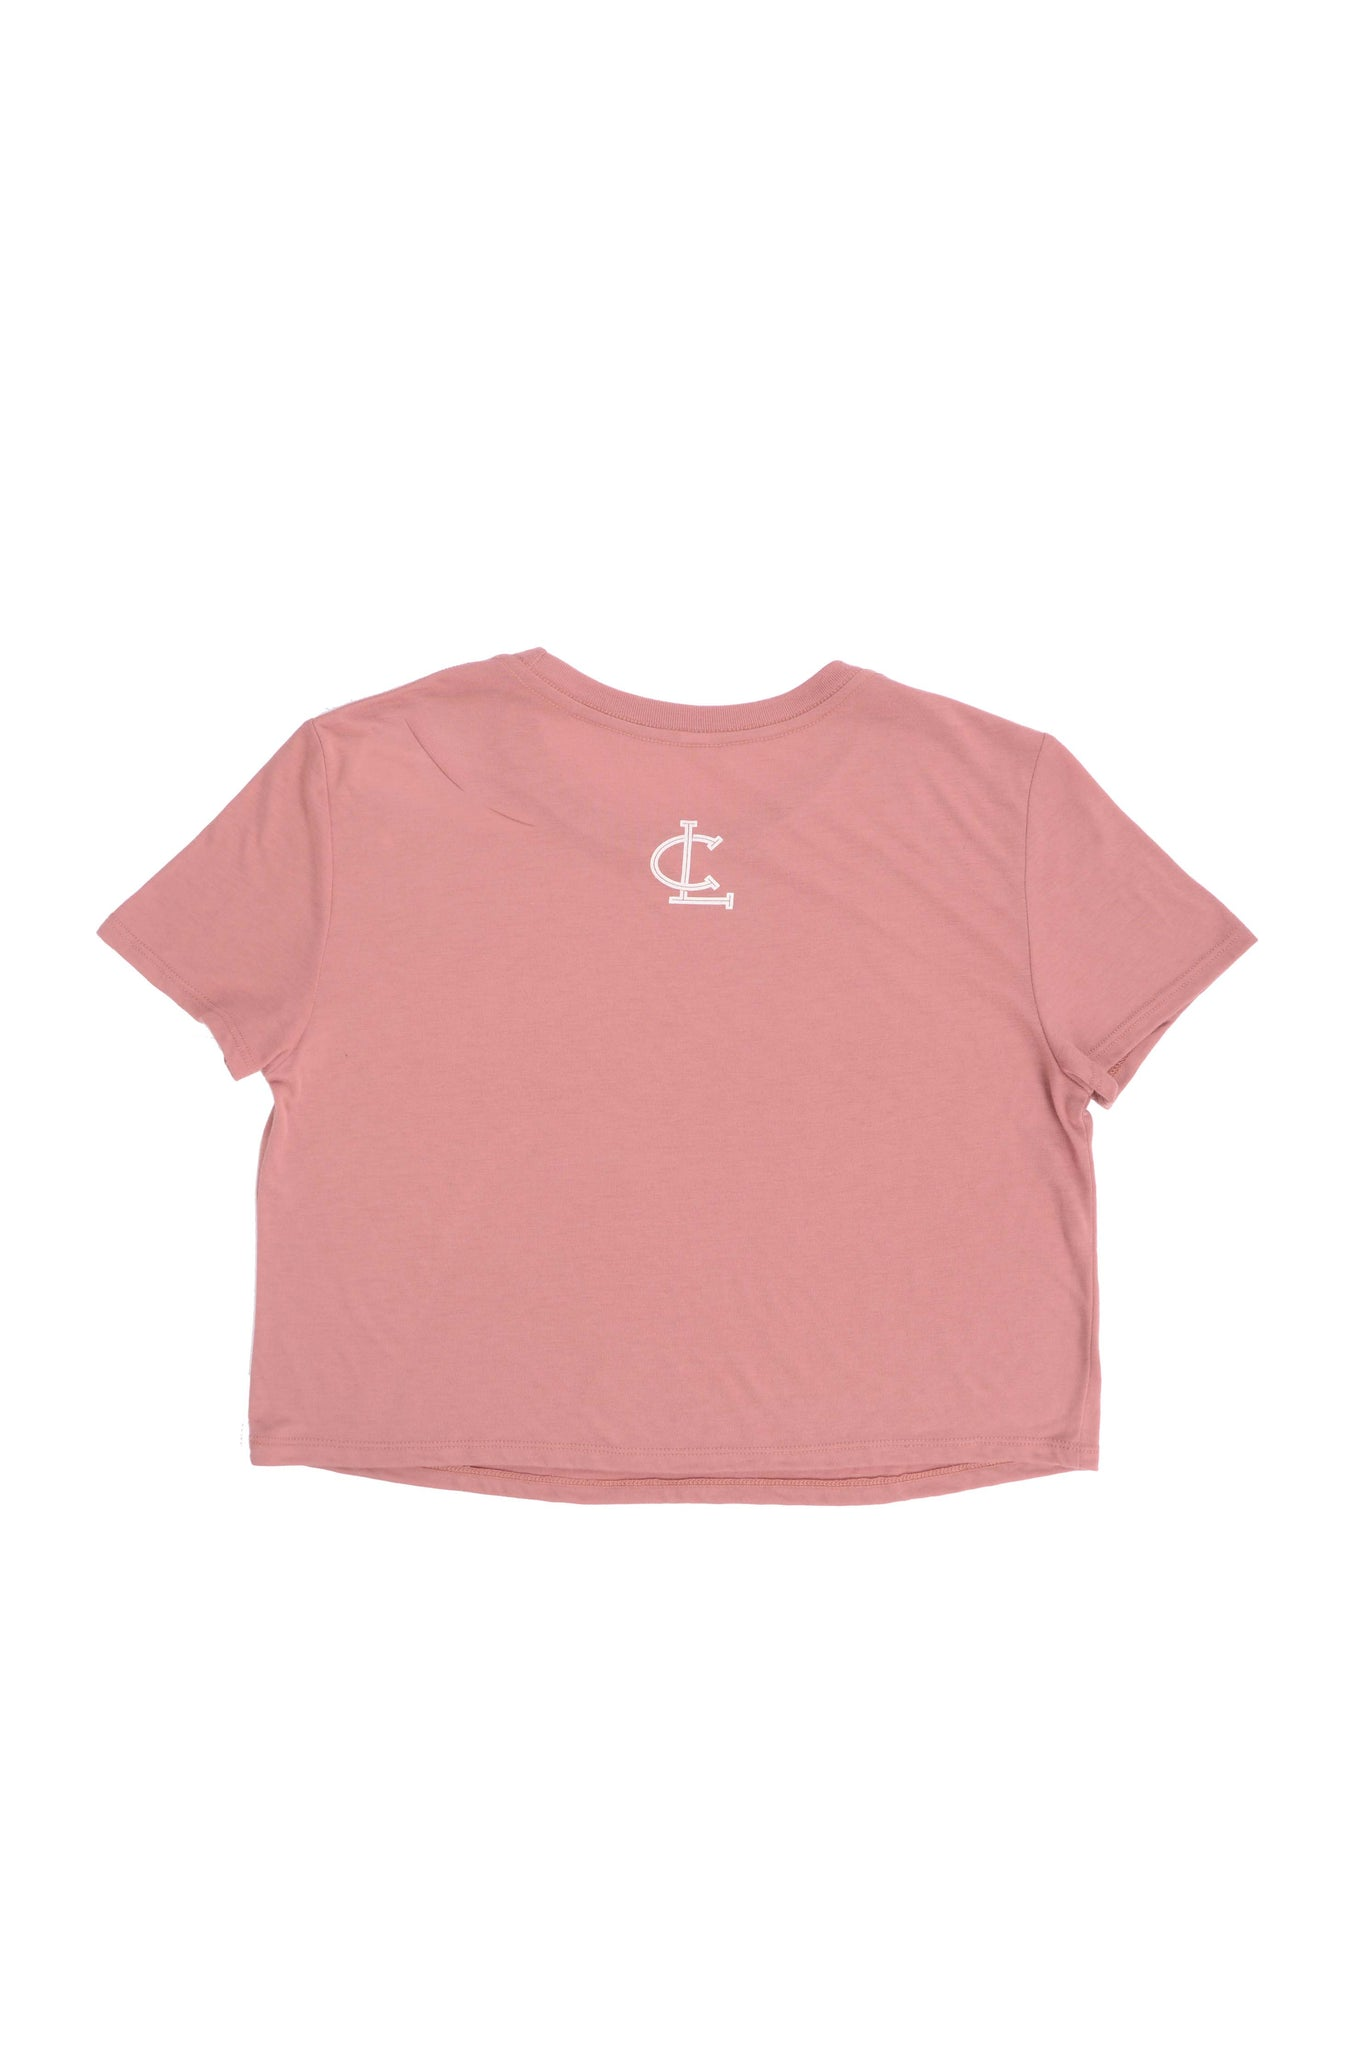 Clifford Lenox Womens Super Soft Cropped Tee - Mauve